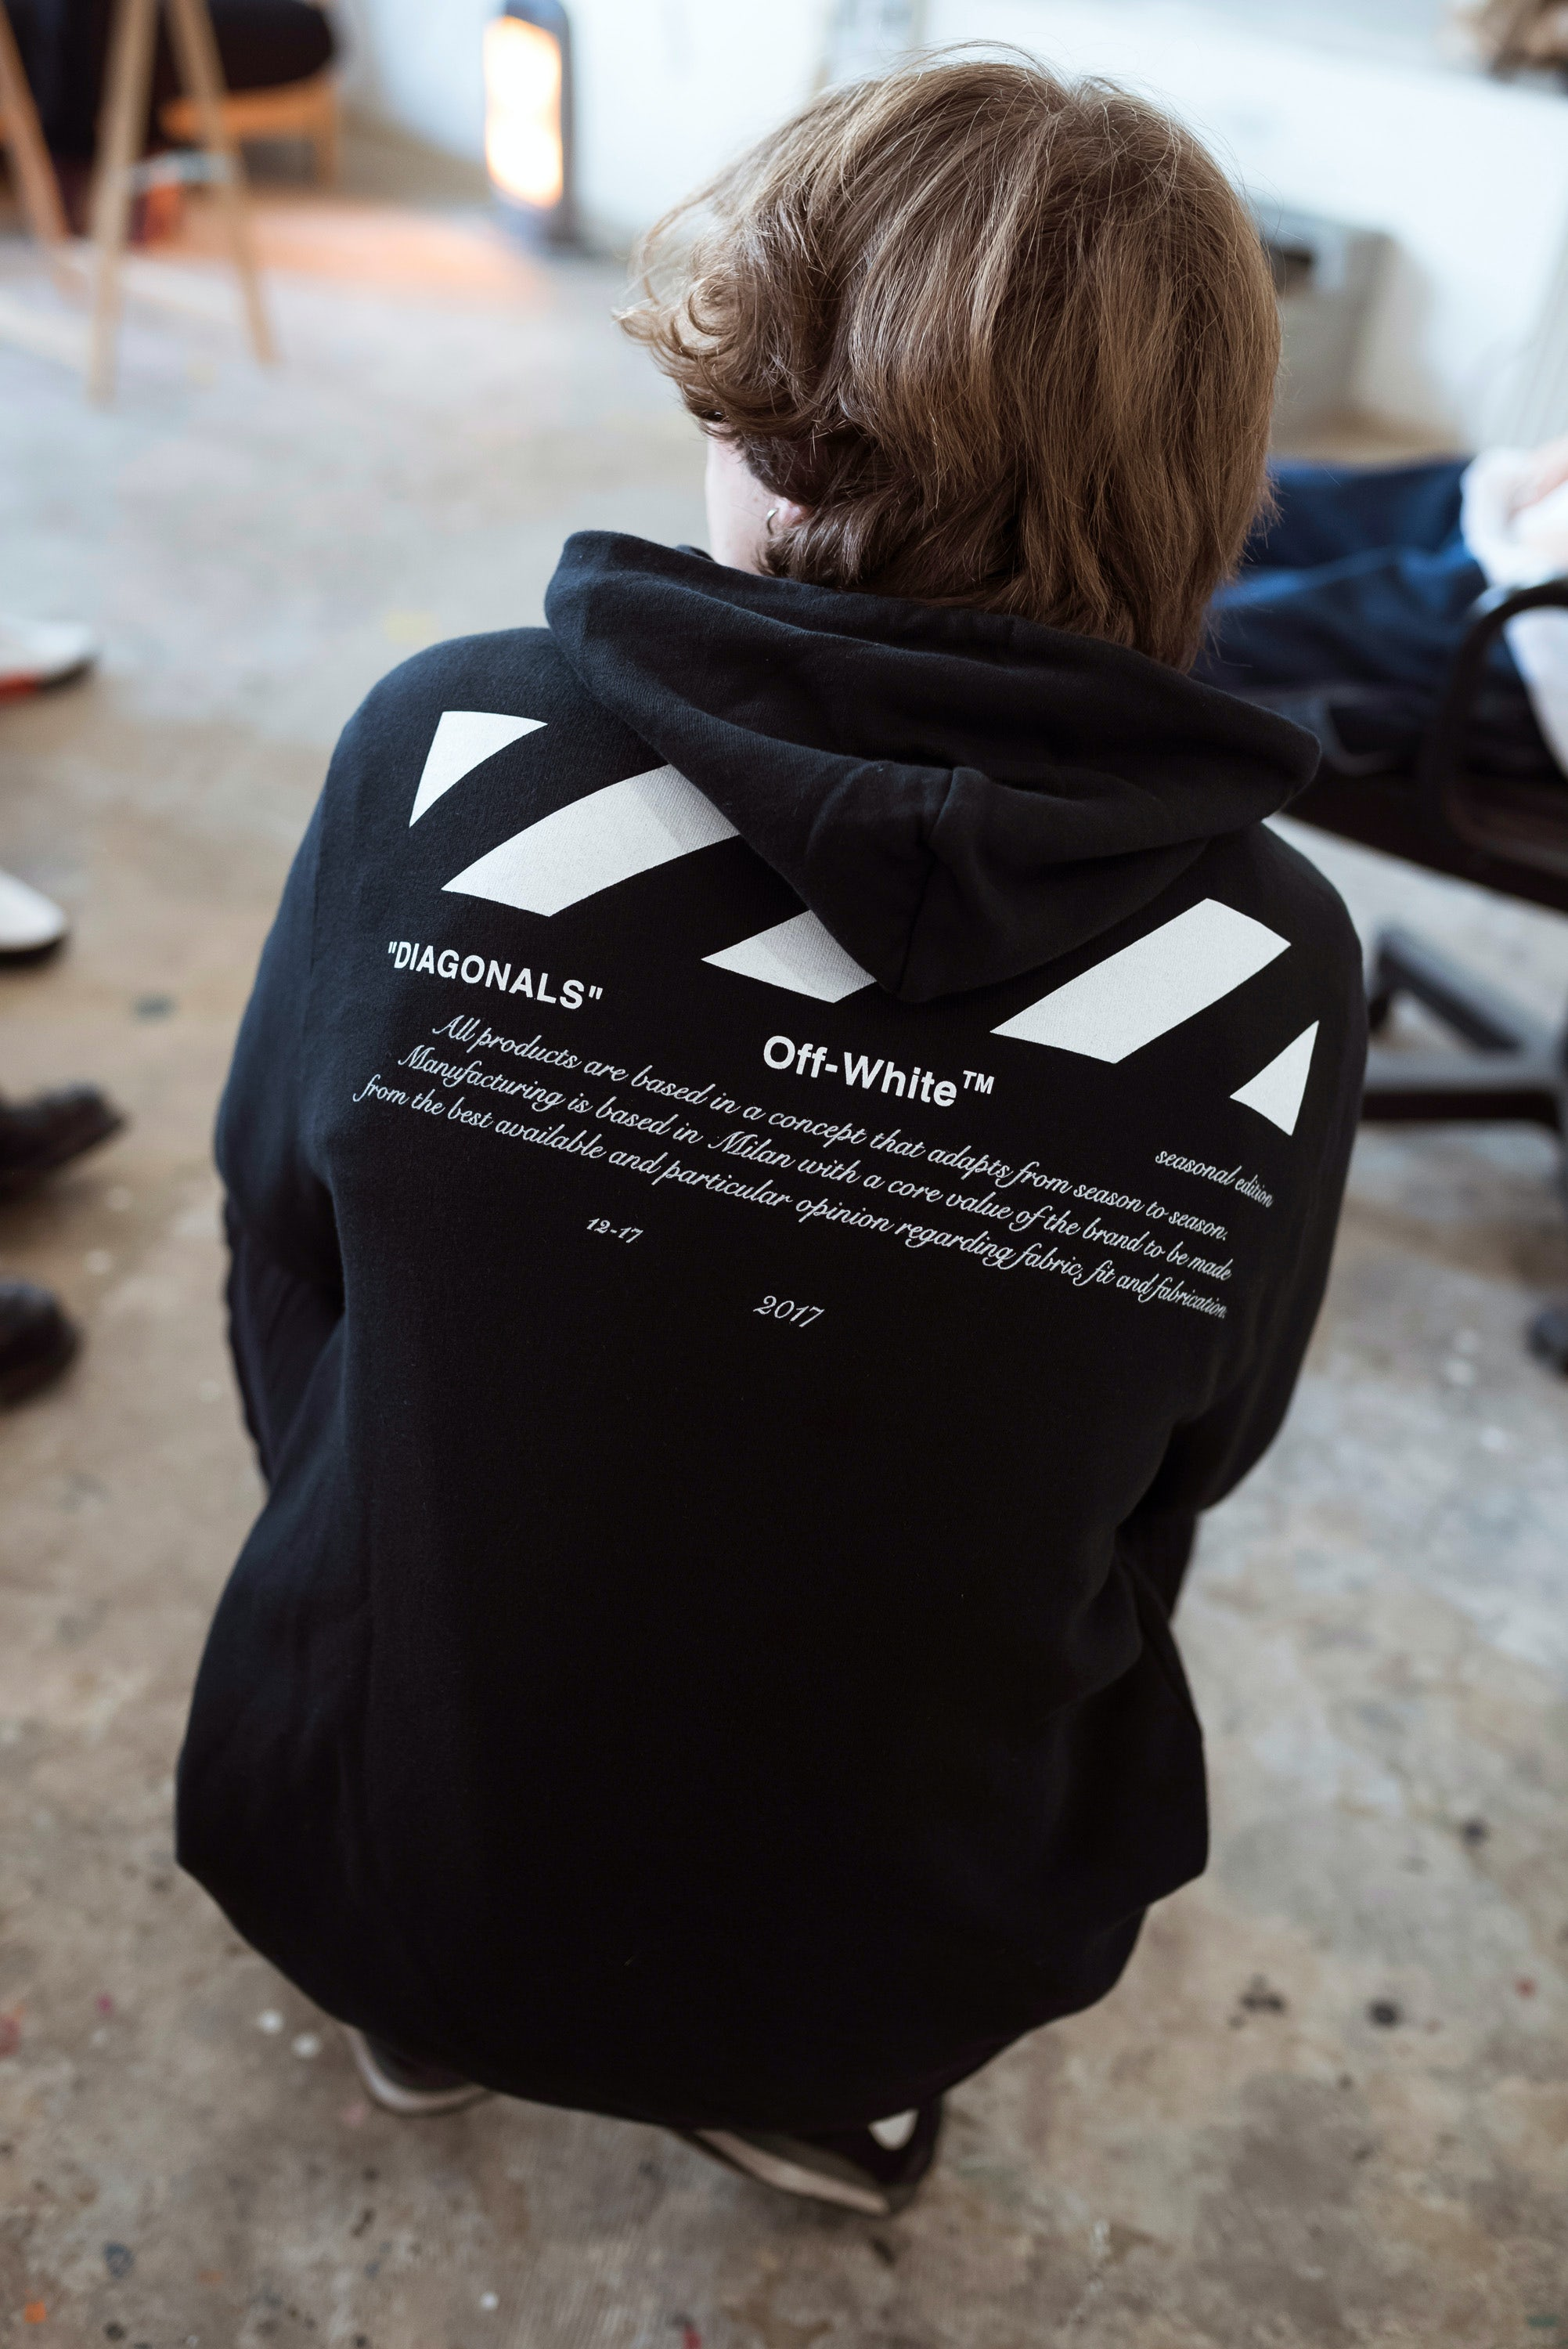 c21641c2a793 Off-White Launches a  More Affordable  Collection